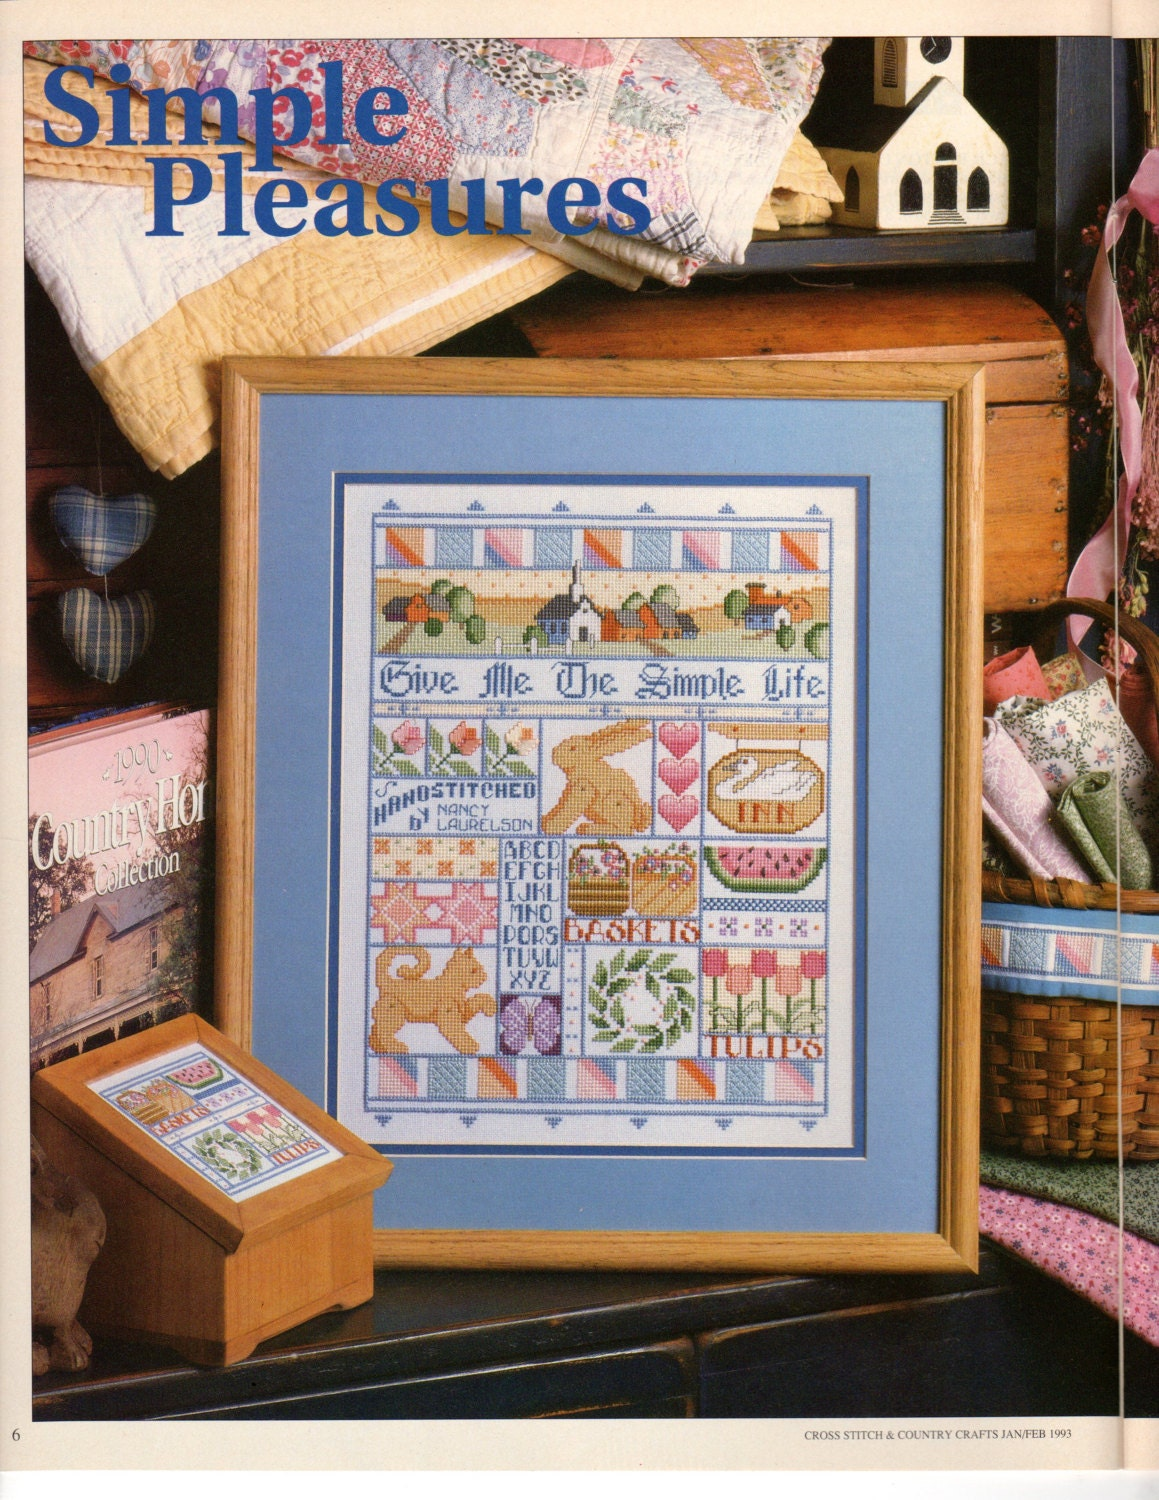 Cross stitch country crafts magazine back issues - Cross Stitch Country Crafts Issue Jan Feb93 Sold By Kryssyscraftstash